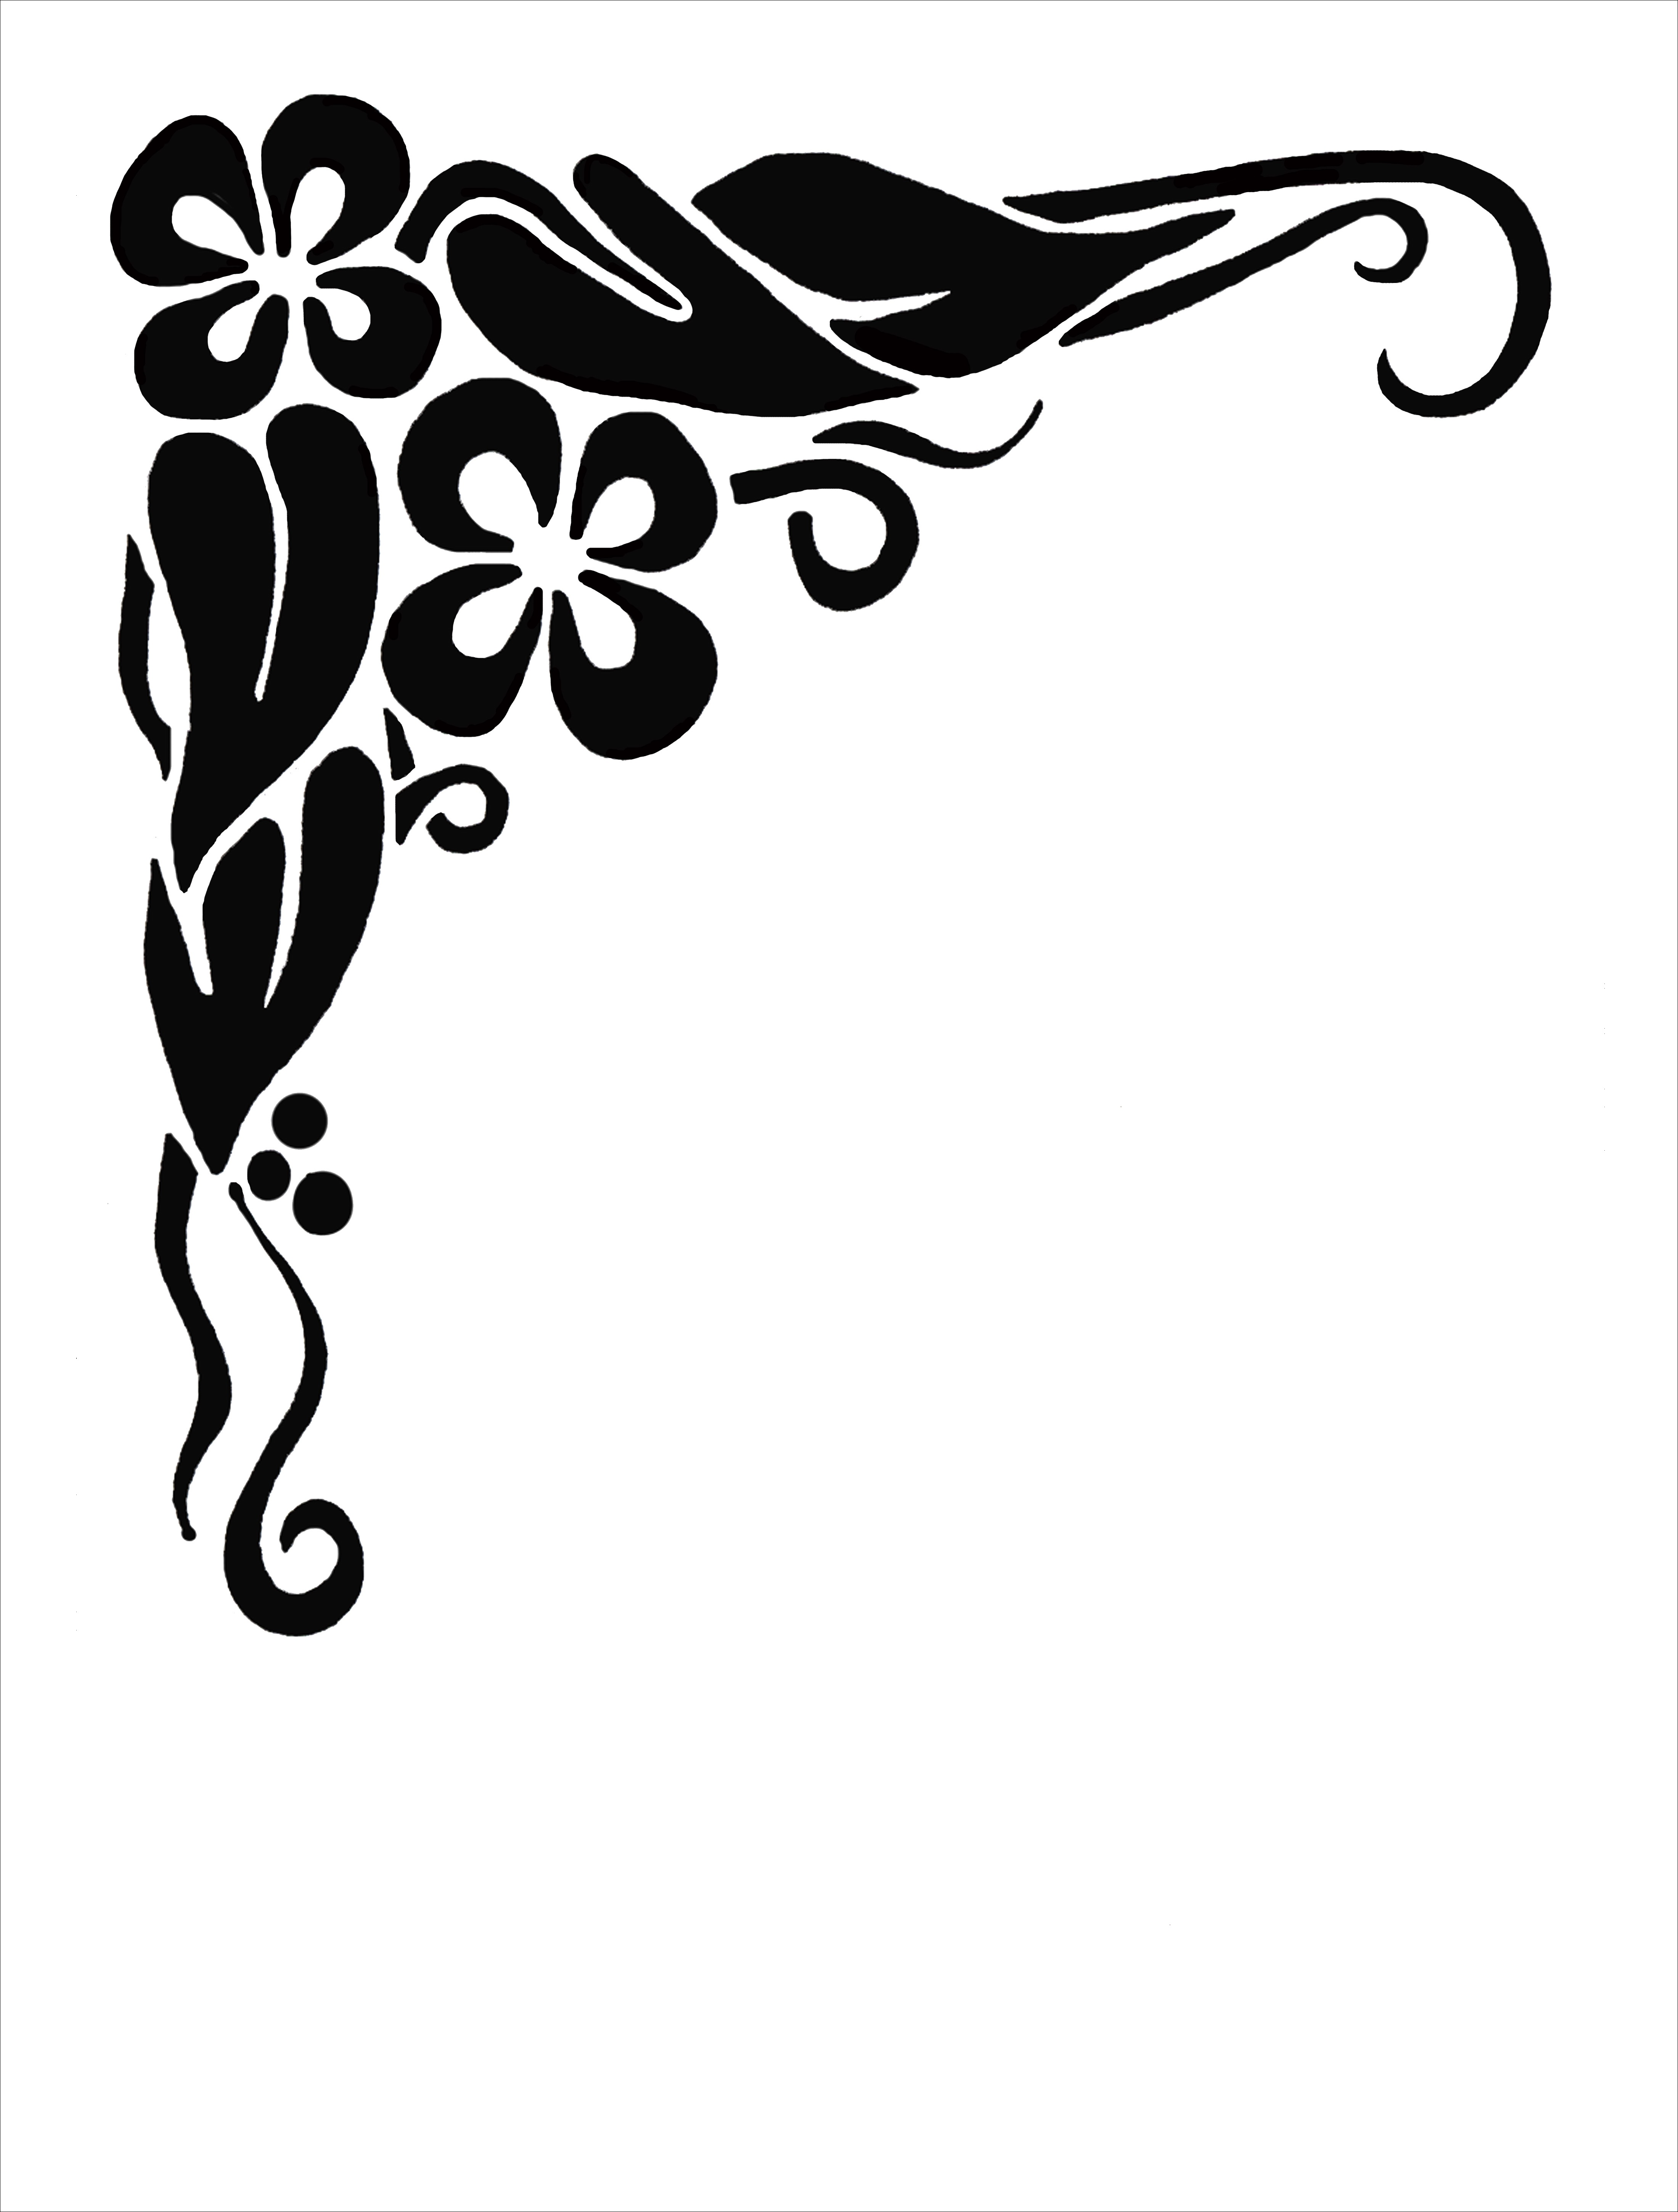 Corners and borders clipart png black and white Fancy Corner Clipart | Free download best Fancy Corner Clipart on ... png black and white